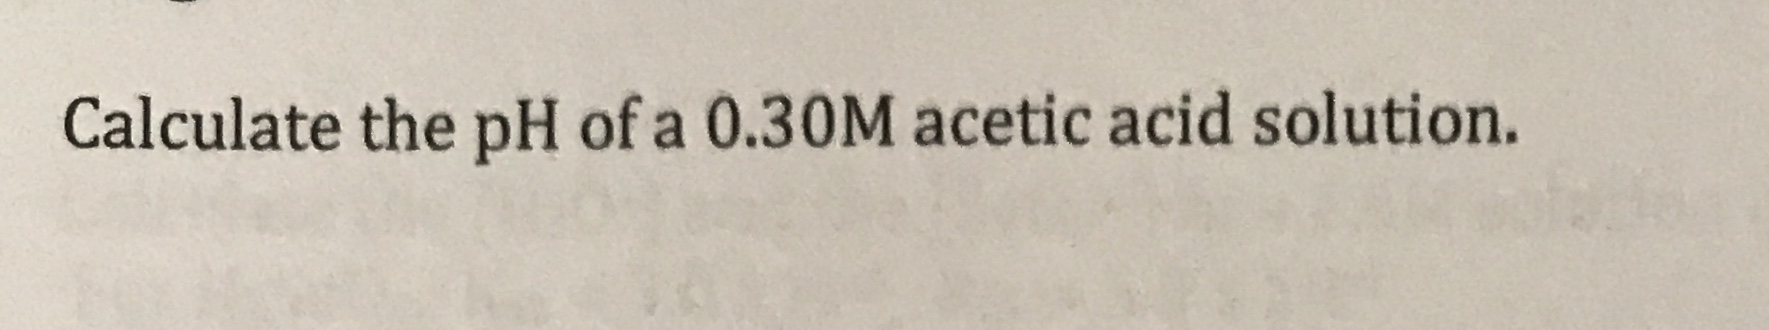 Calculate the pH of a 0.30M acetic acid solution.